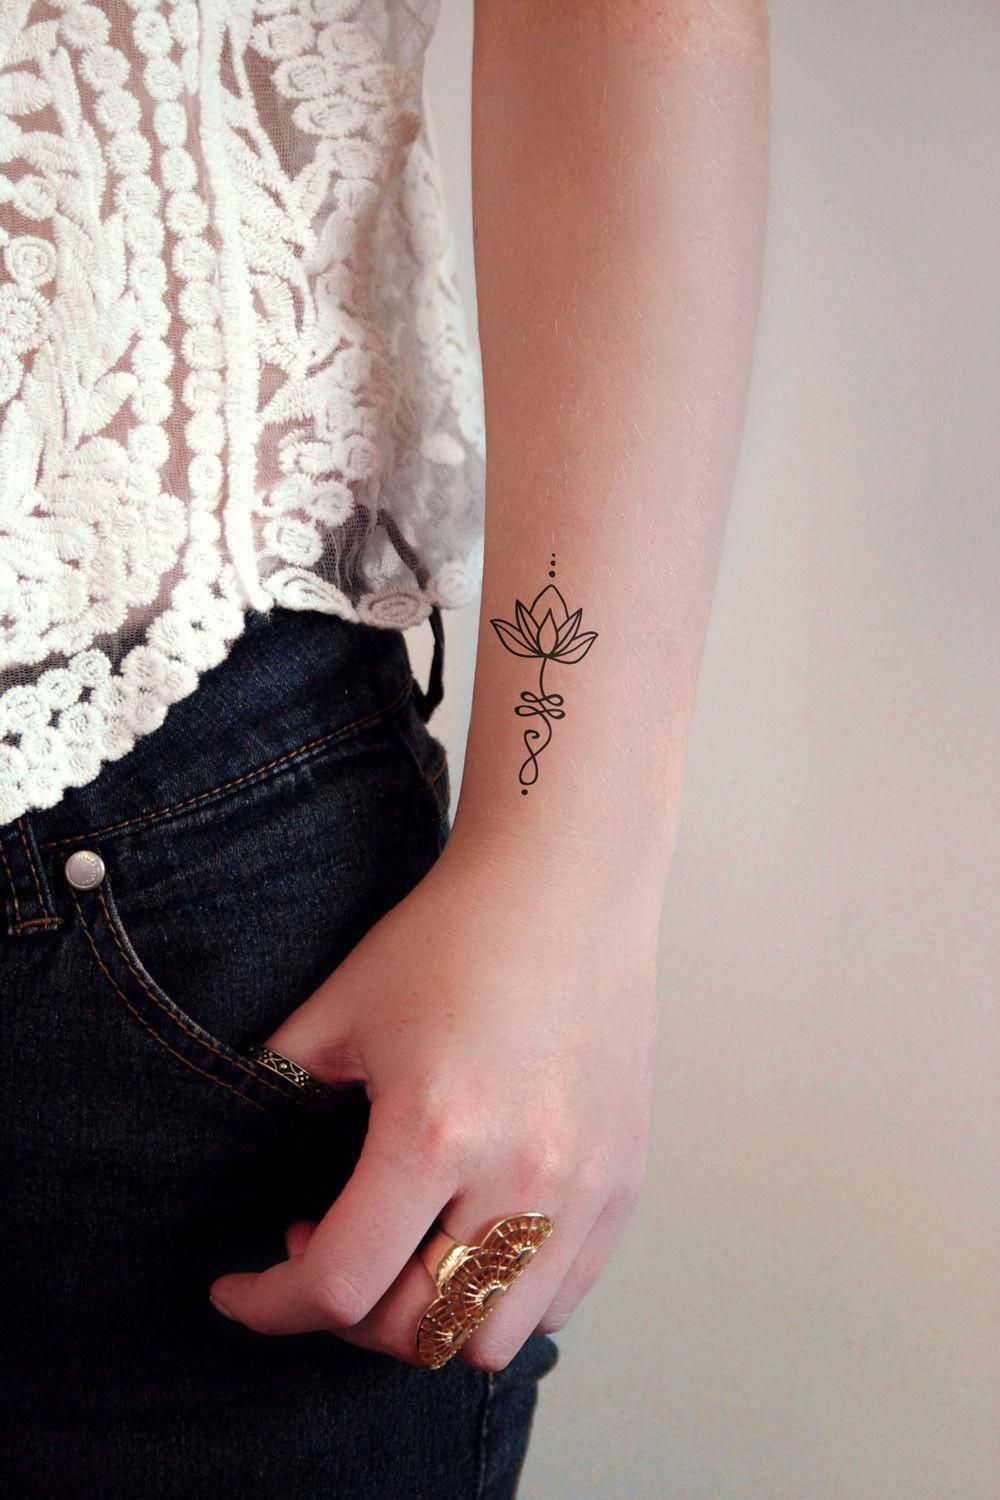 Flower Tattoo For Your Wrist Bohemian Tattoo Henna Style Tattoos Boho Tattoos